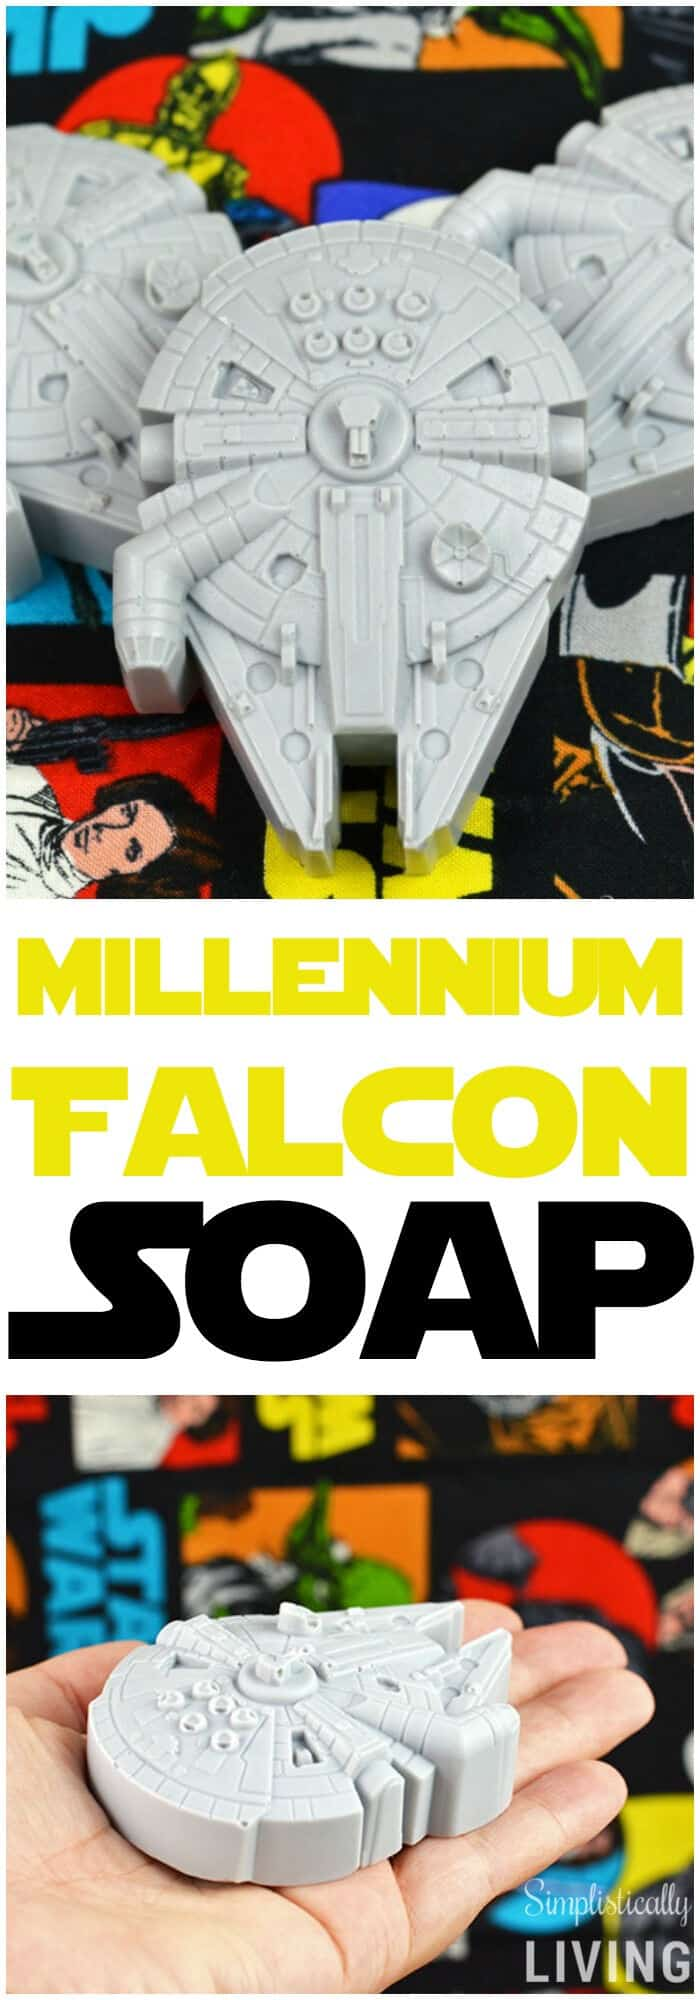 Star Wars Millenium Falcon Soap by Simplistically Living